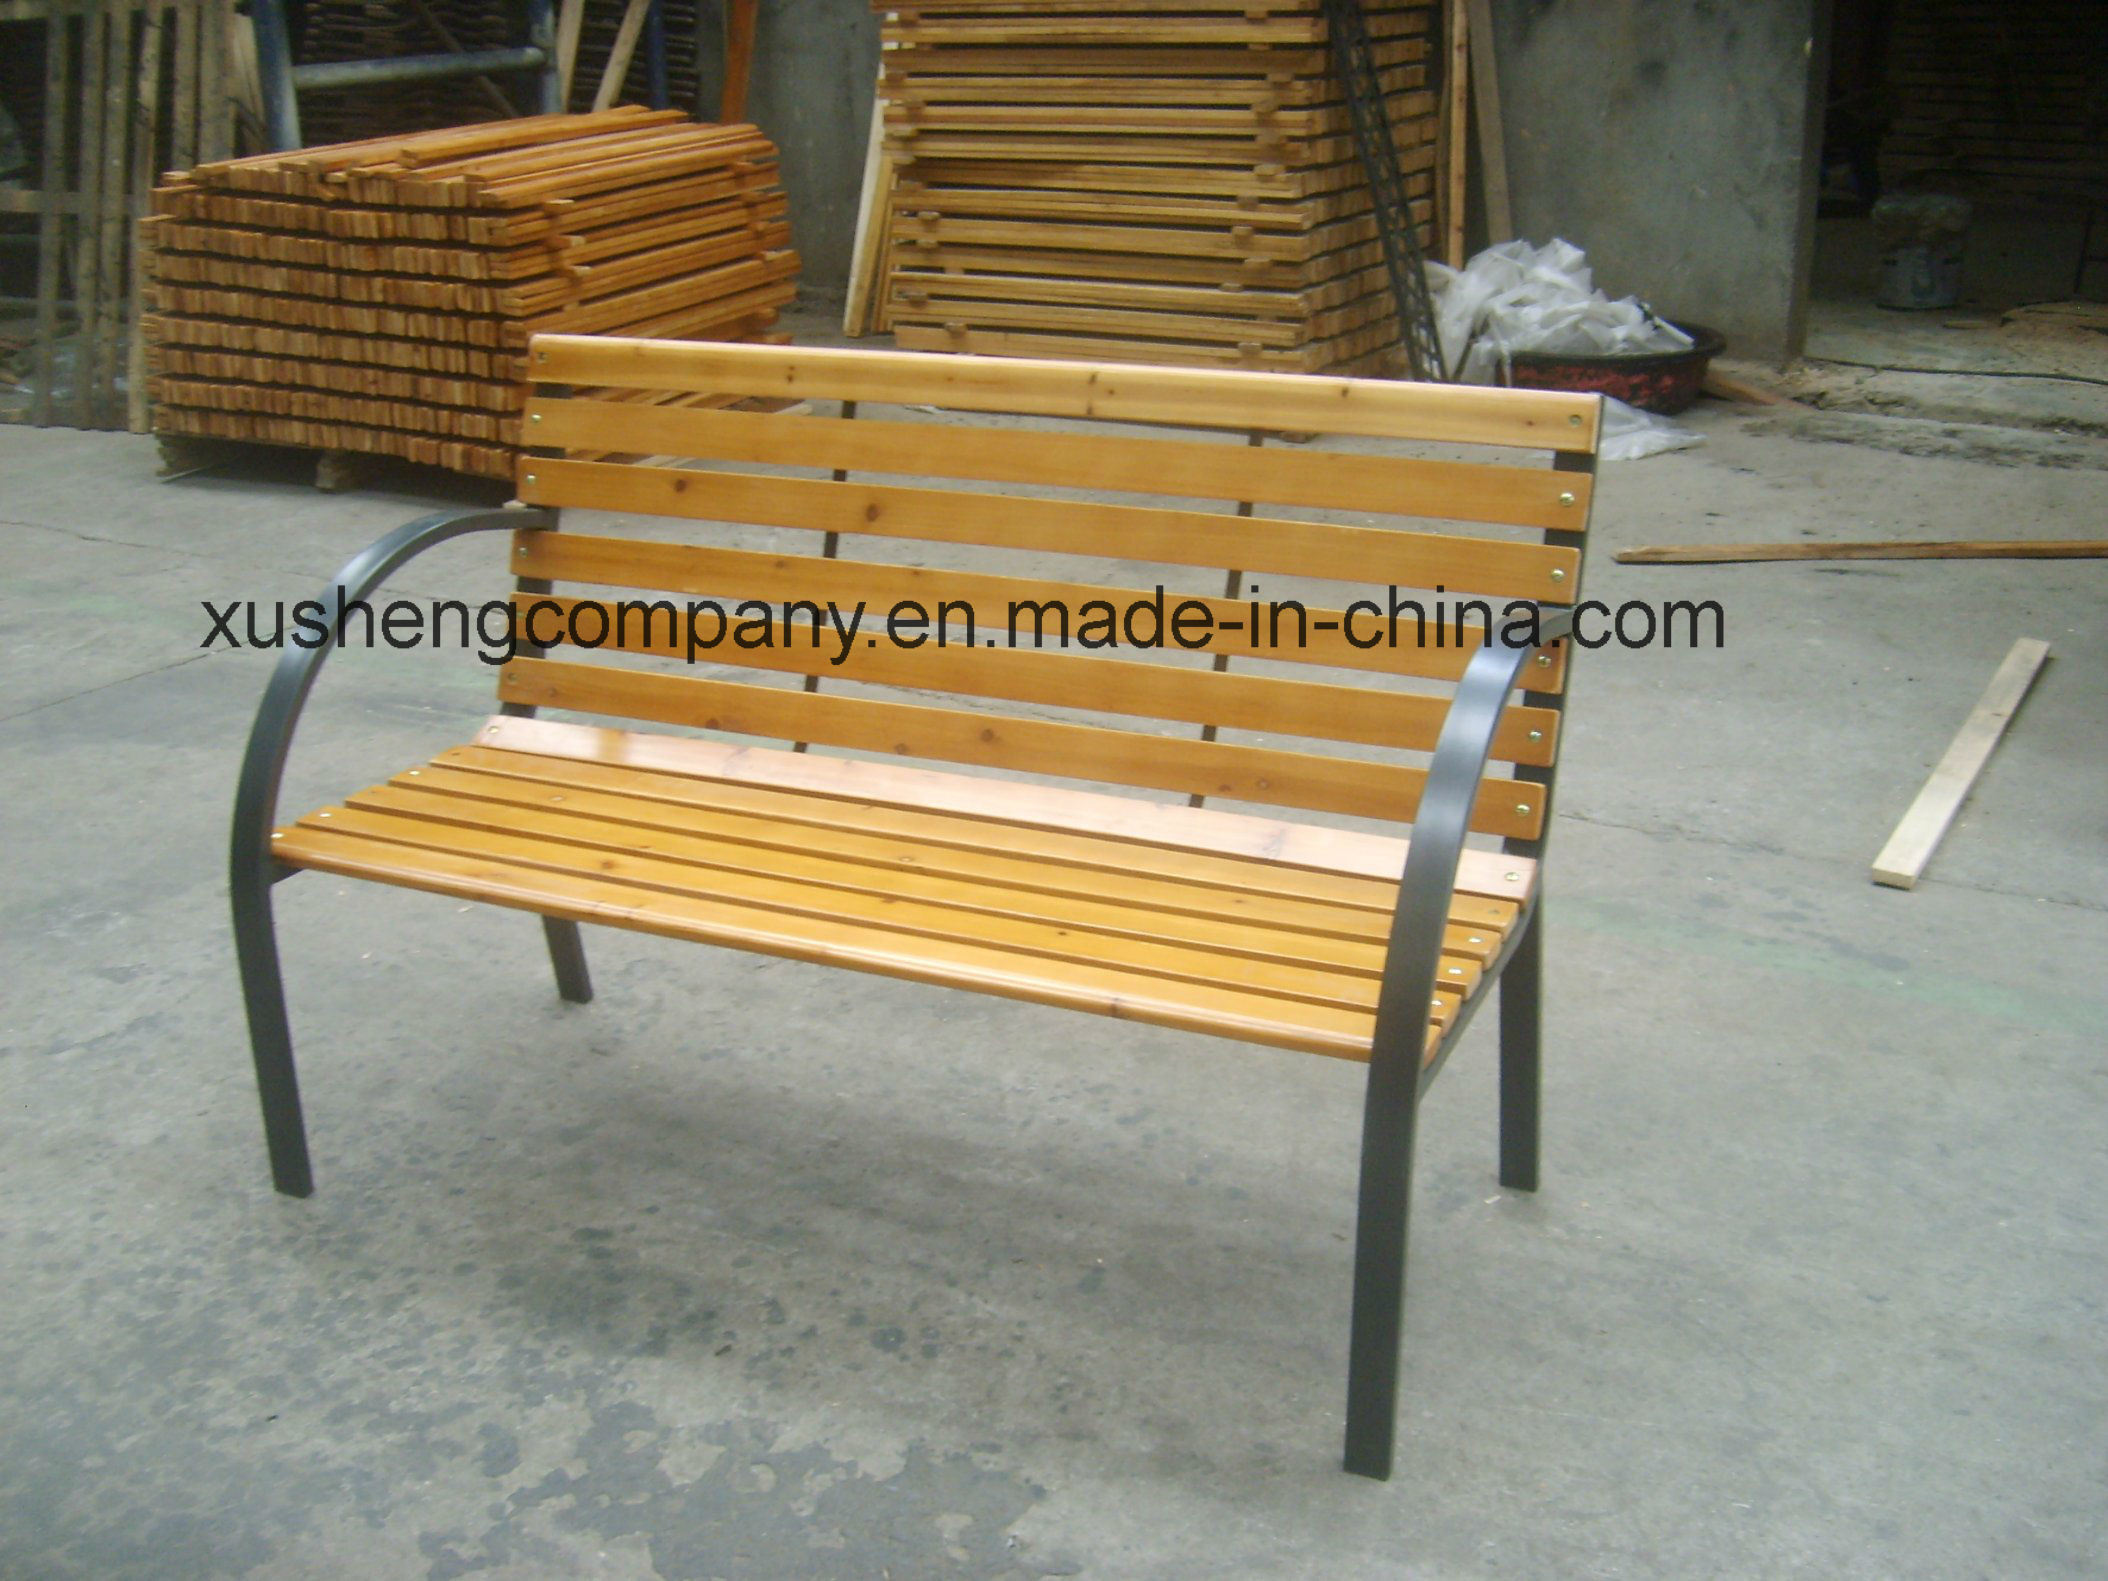 Outdoor Cast Iron and Wood Garden Bench Park Chairs